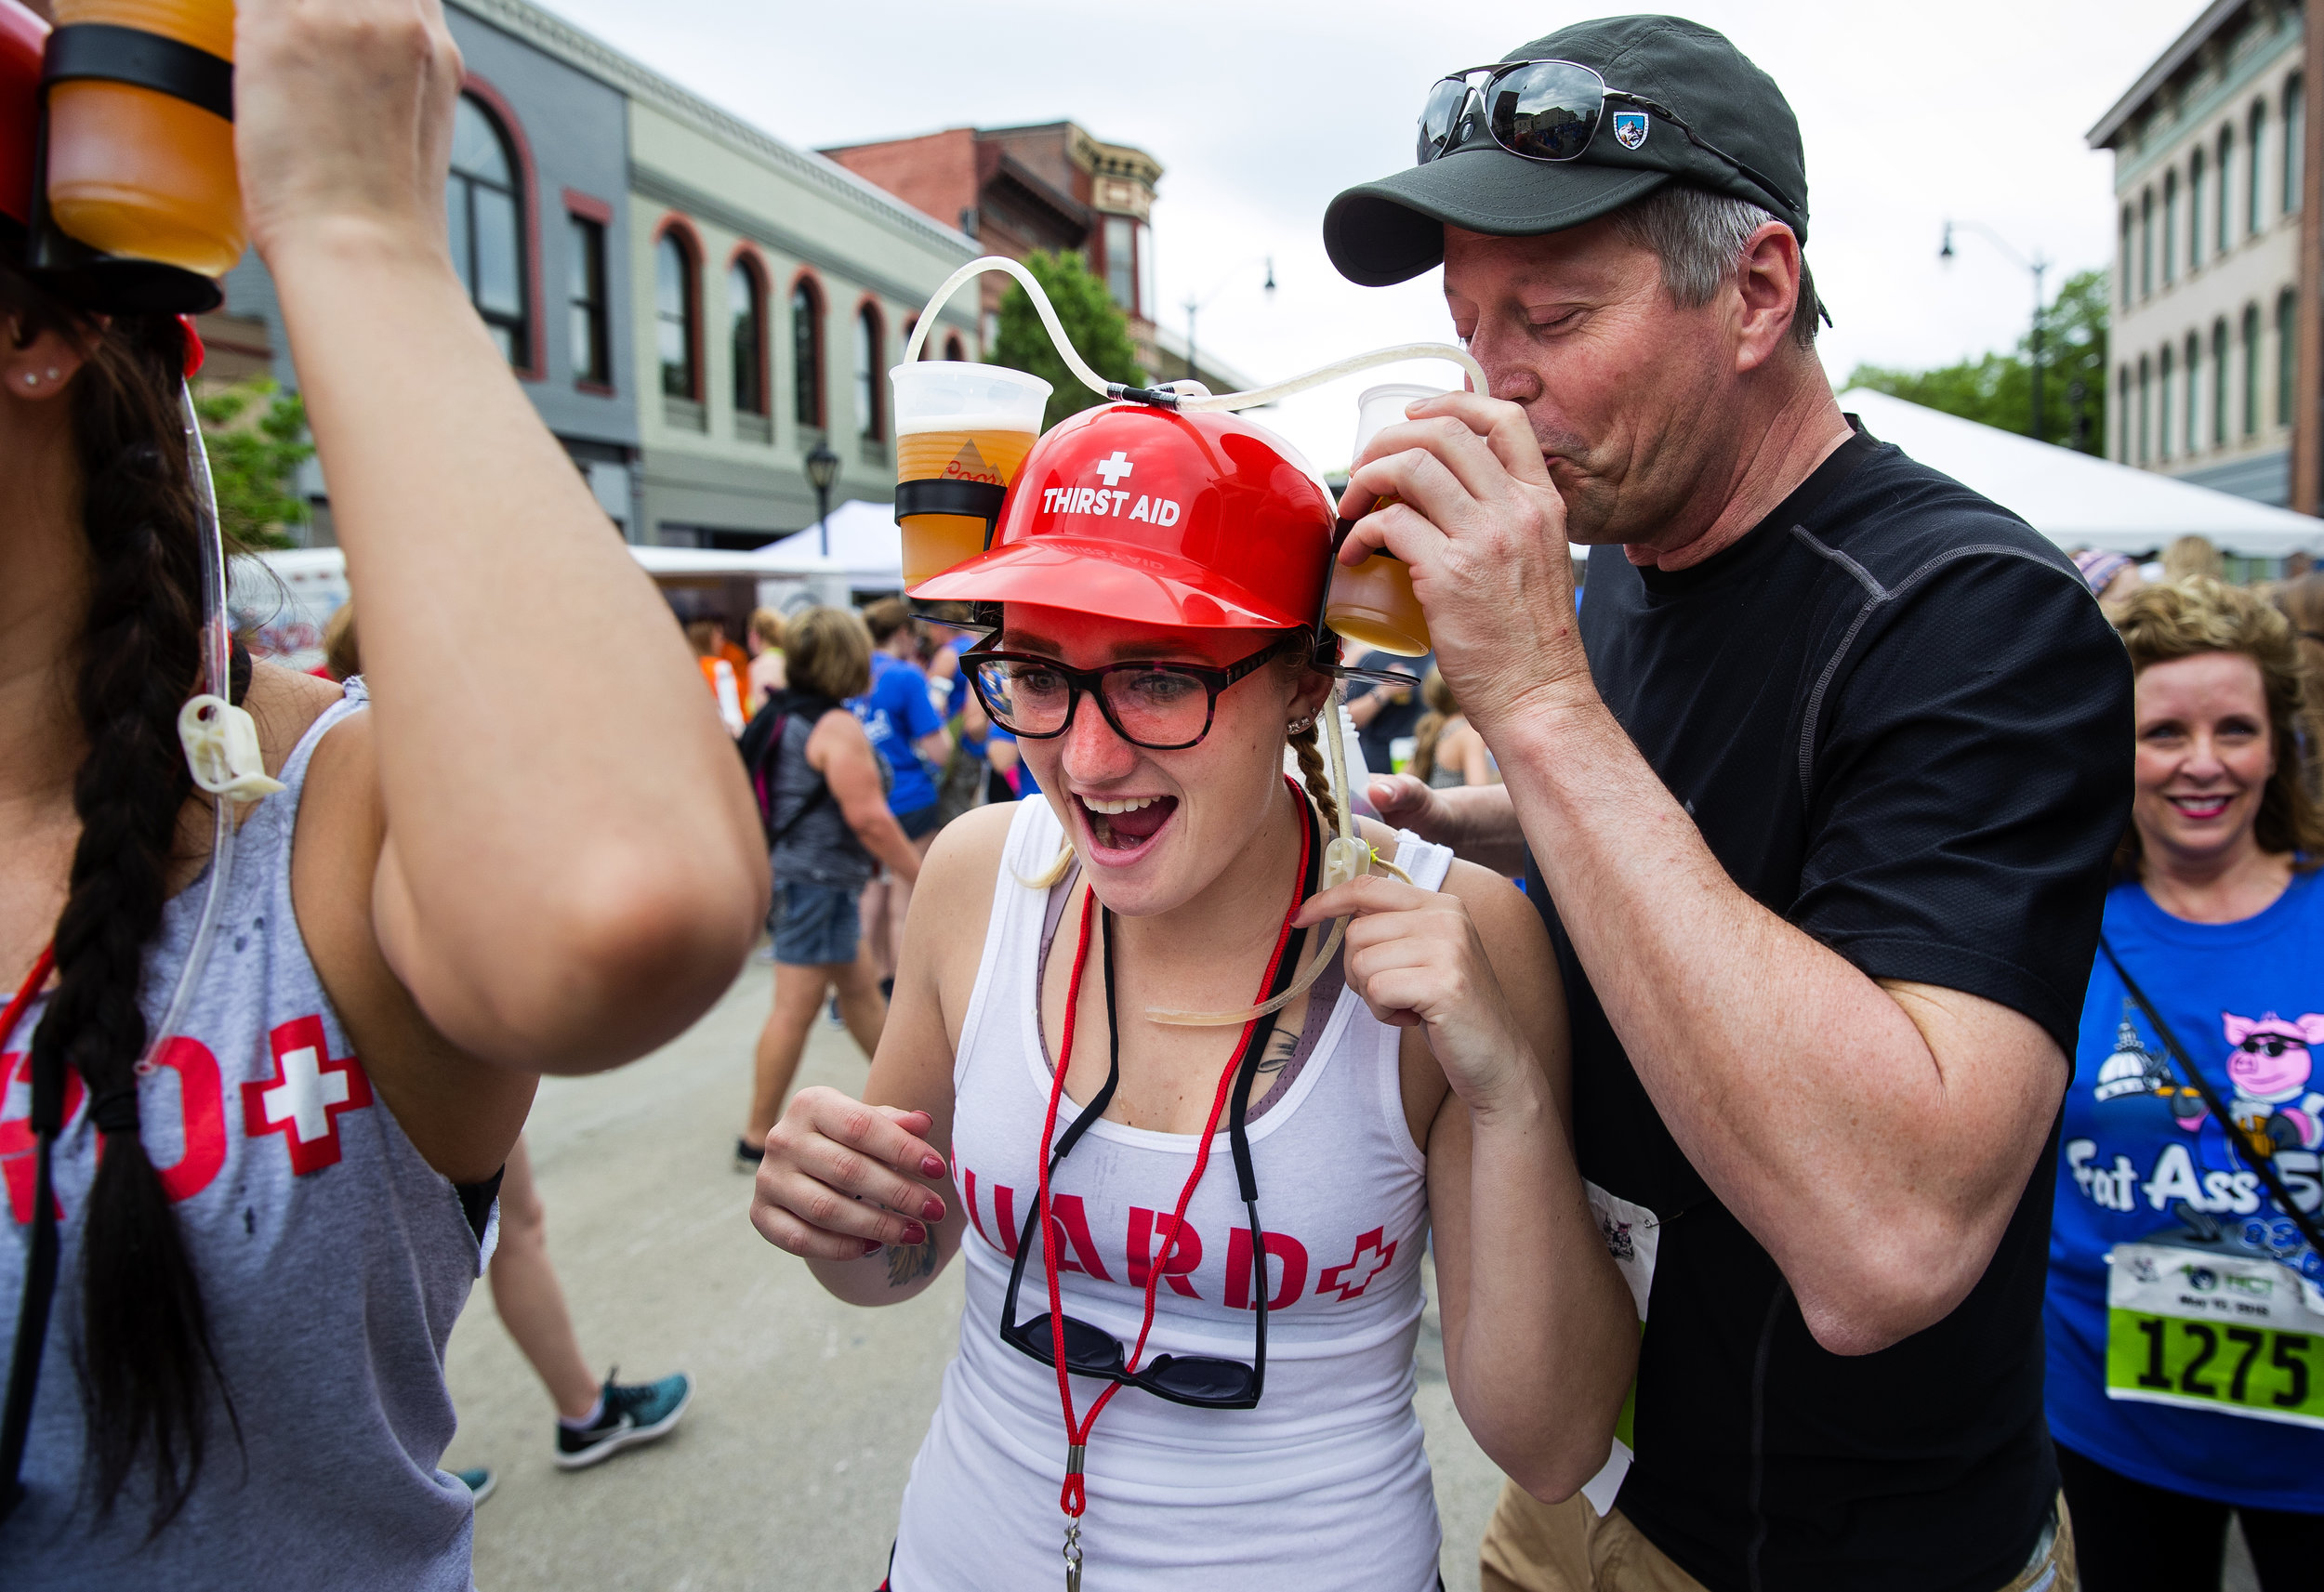 Jeff Wilson helps his daughter Courtney drain a little of of the Blue Moon beer stored in her two-cup hat after they finished the Fat Ass 5K & Street Party for Charity race in downtown Springfield Saturday, May 12, 2018. [Ted Schurter/The State Journal-Register]